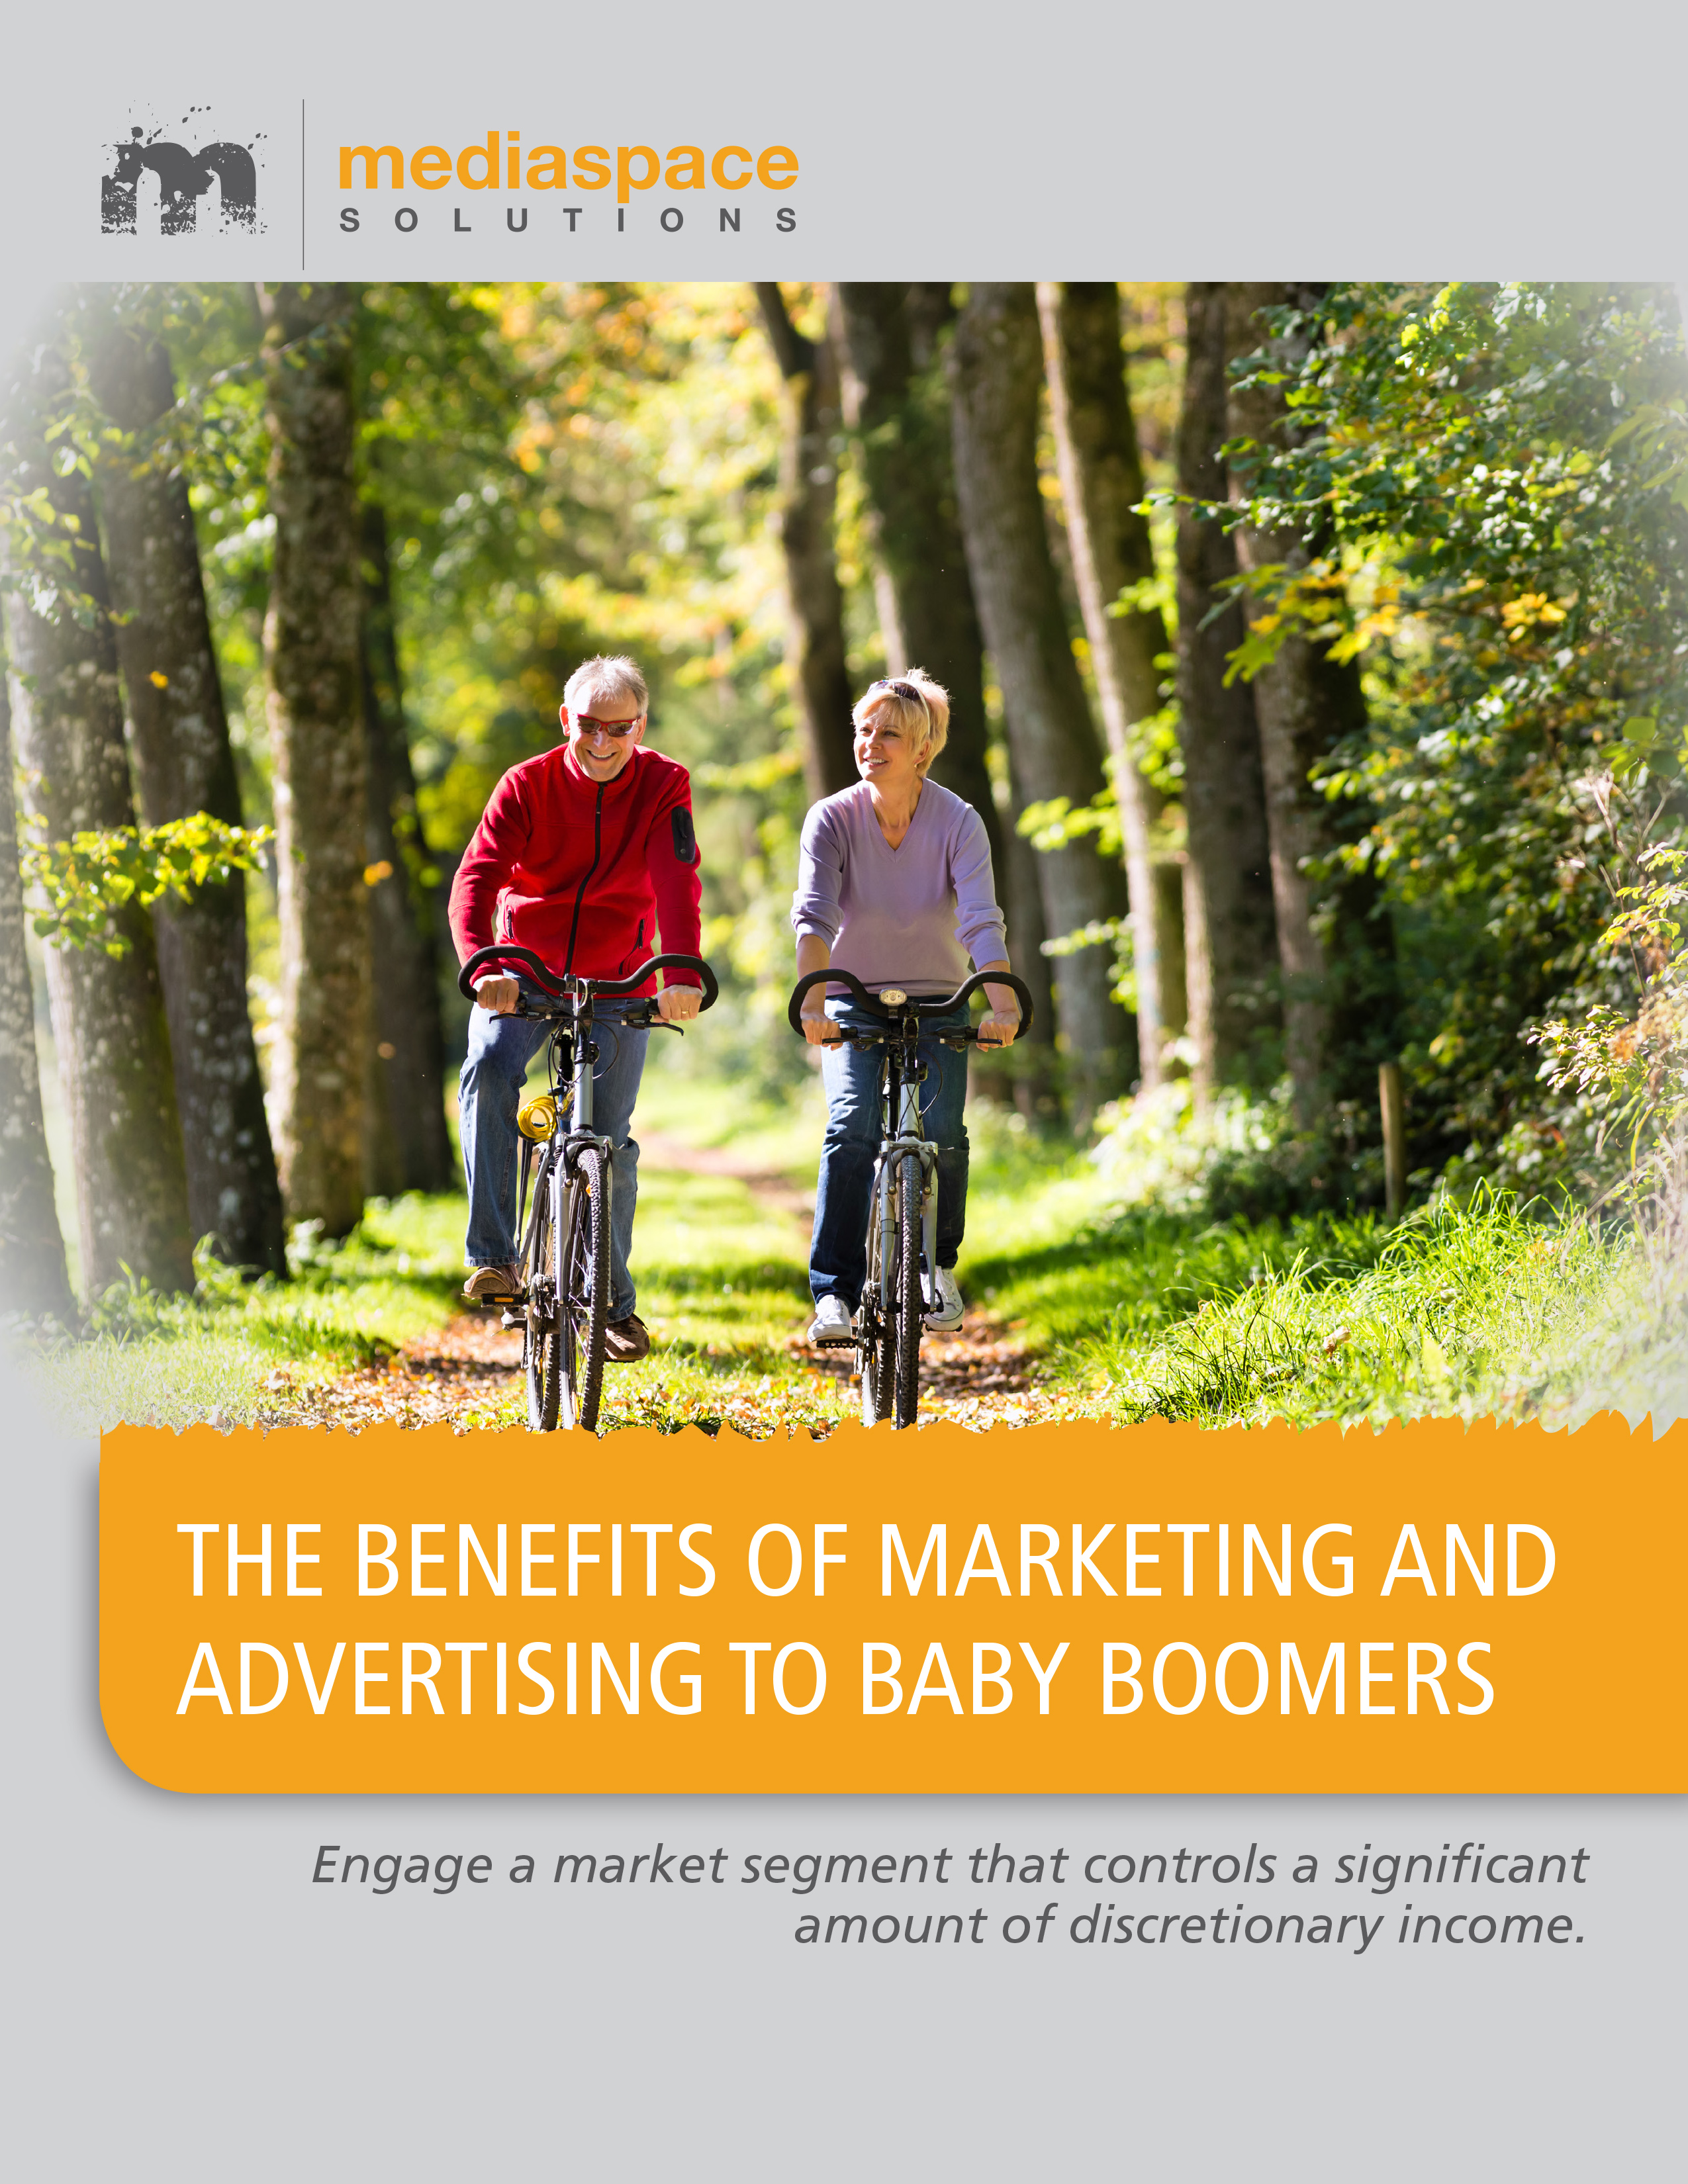 The Benefits of Marketing and Advertising to Baby Boomers